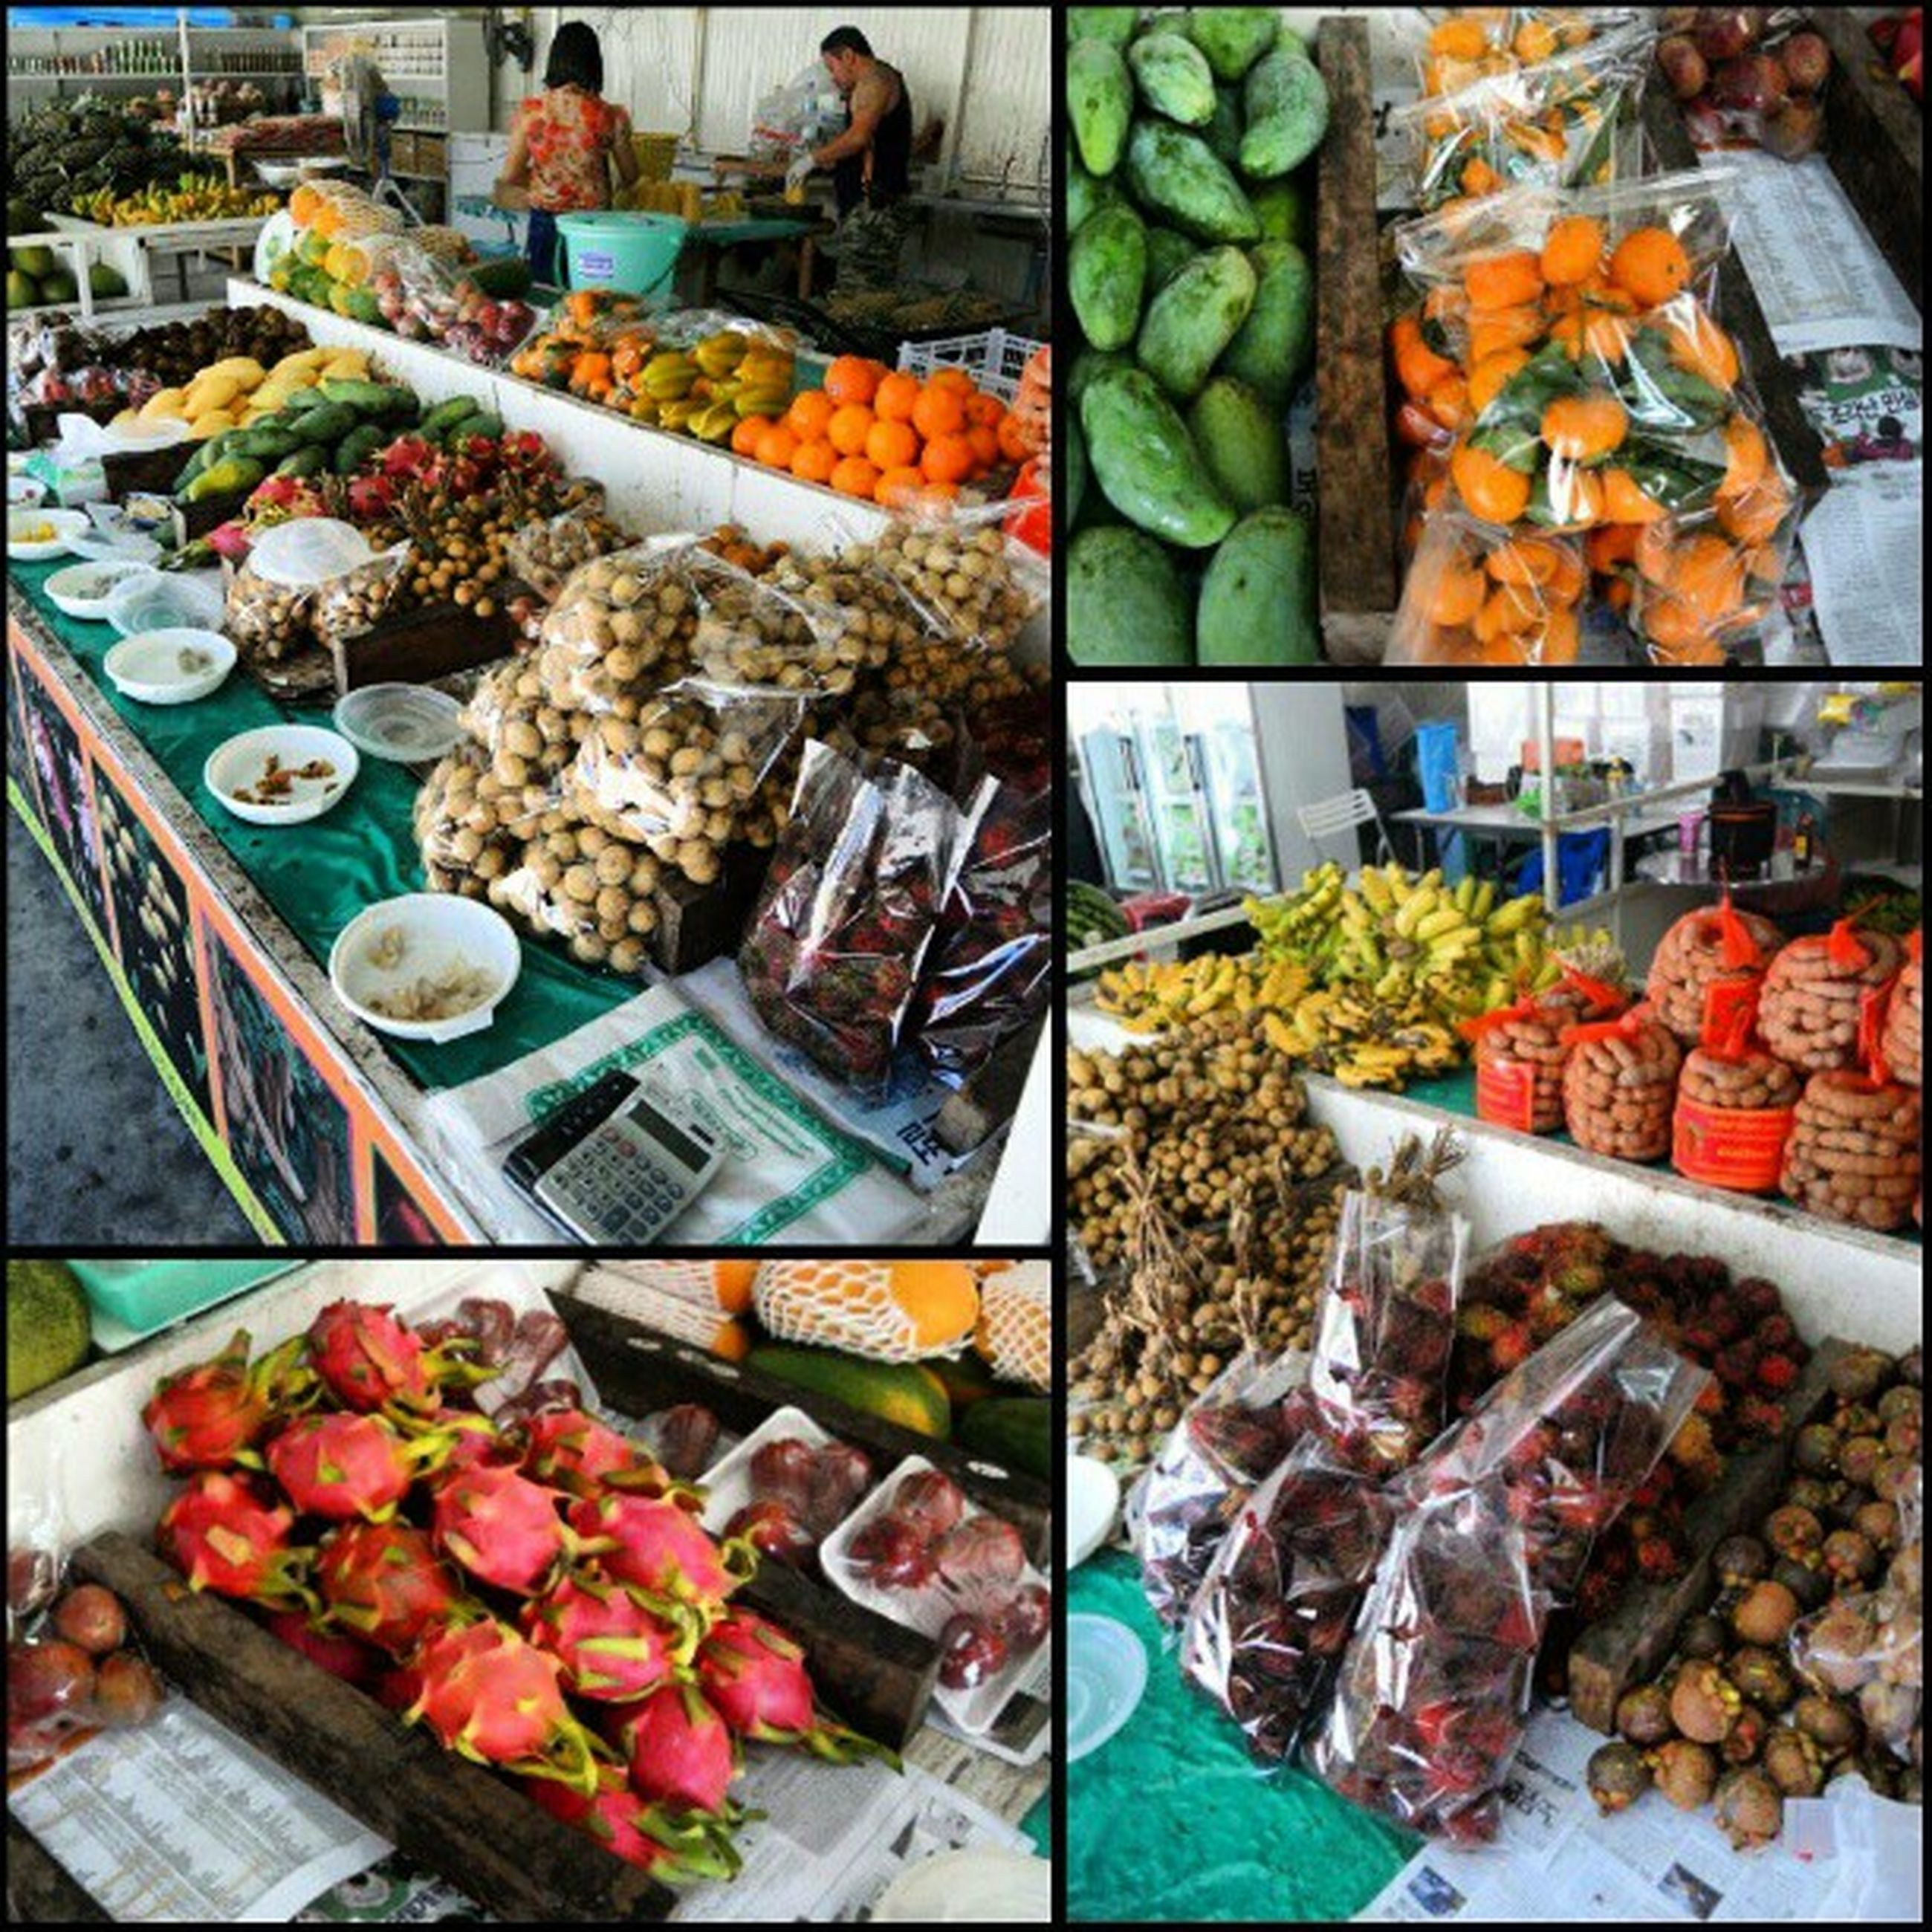 for sale, retail, food and drink, market stall, market, choice, variation, food, abundance, freshness, large group of objects, store, small business, sale, price tag, display, high angle view, selling, collection, healthy eating